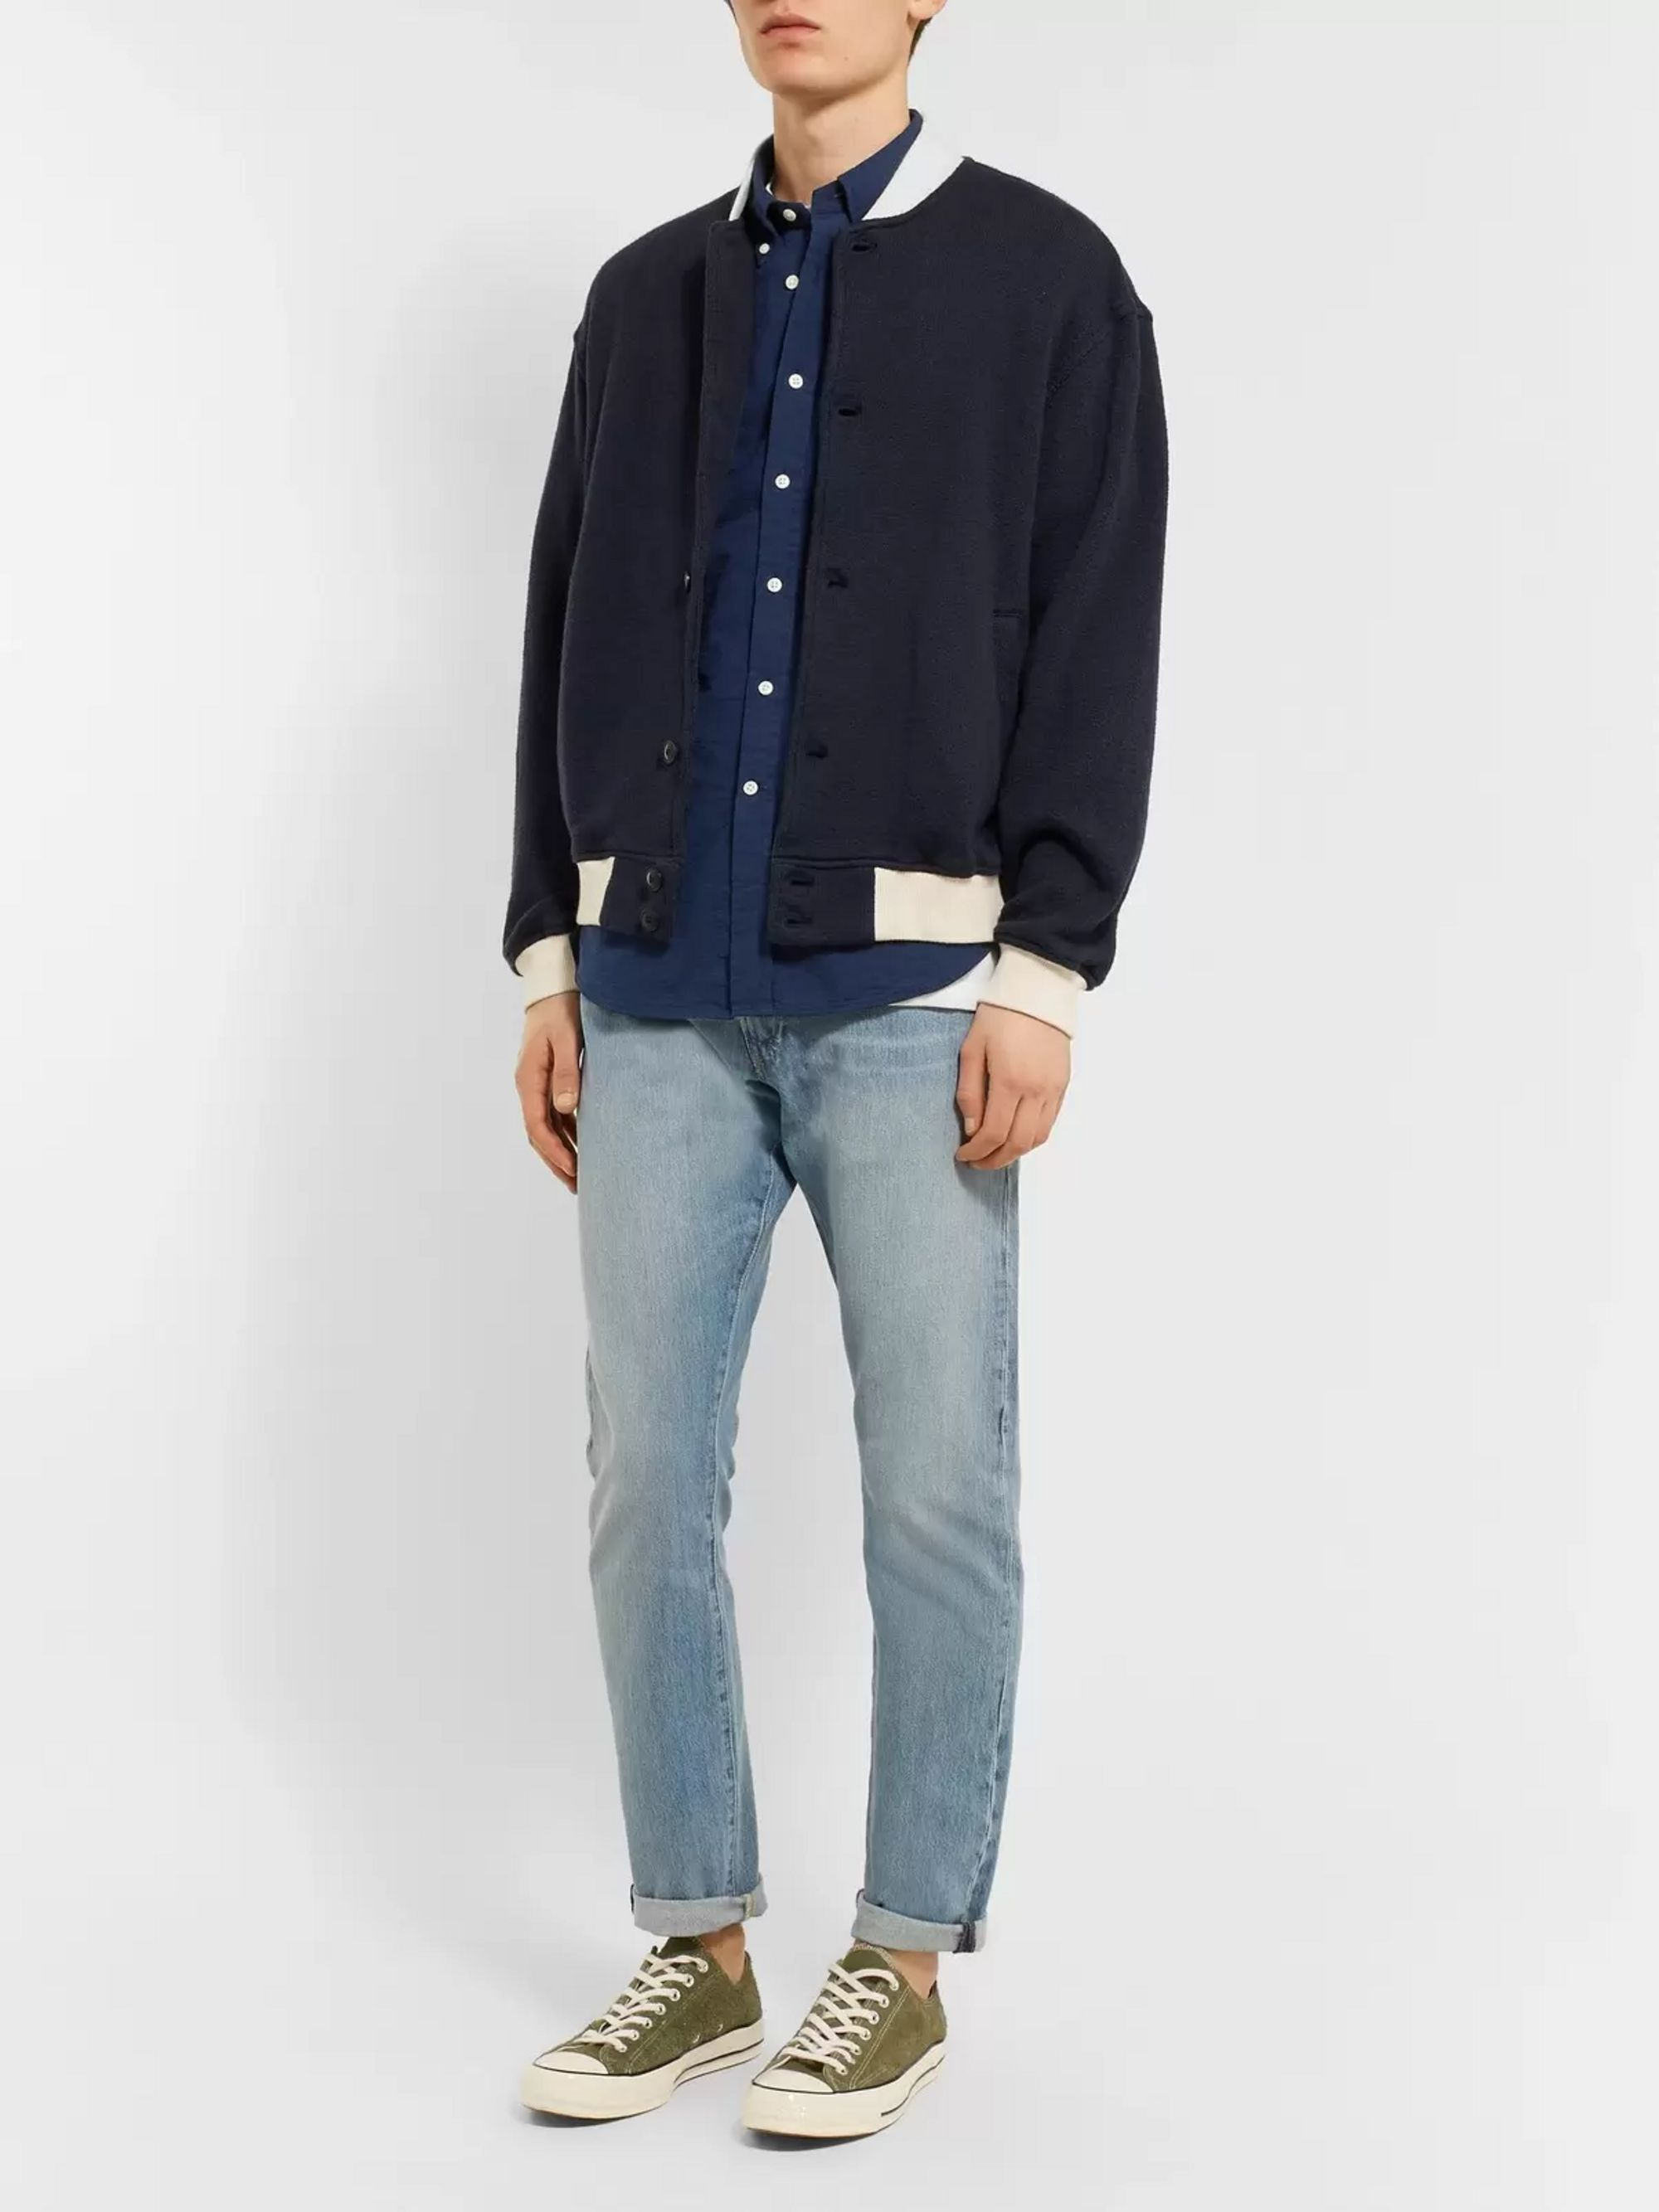 ralph lauren seersucker shirt navy